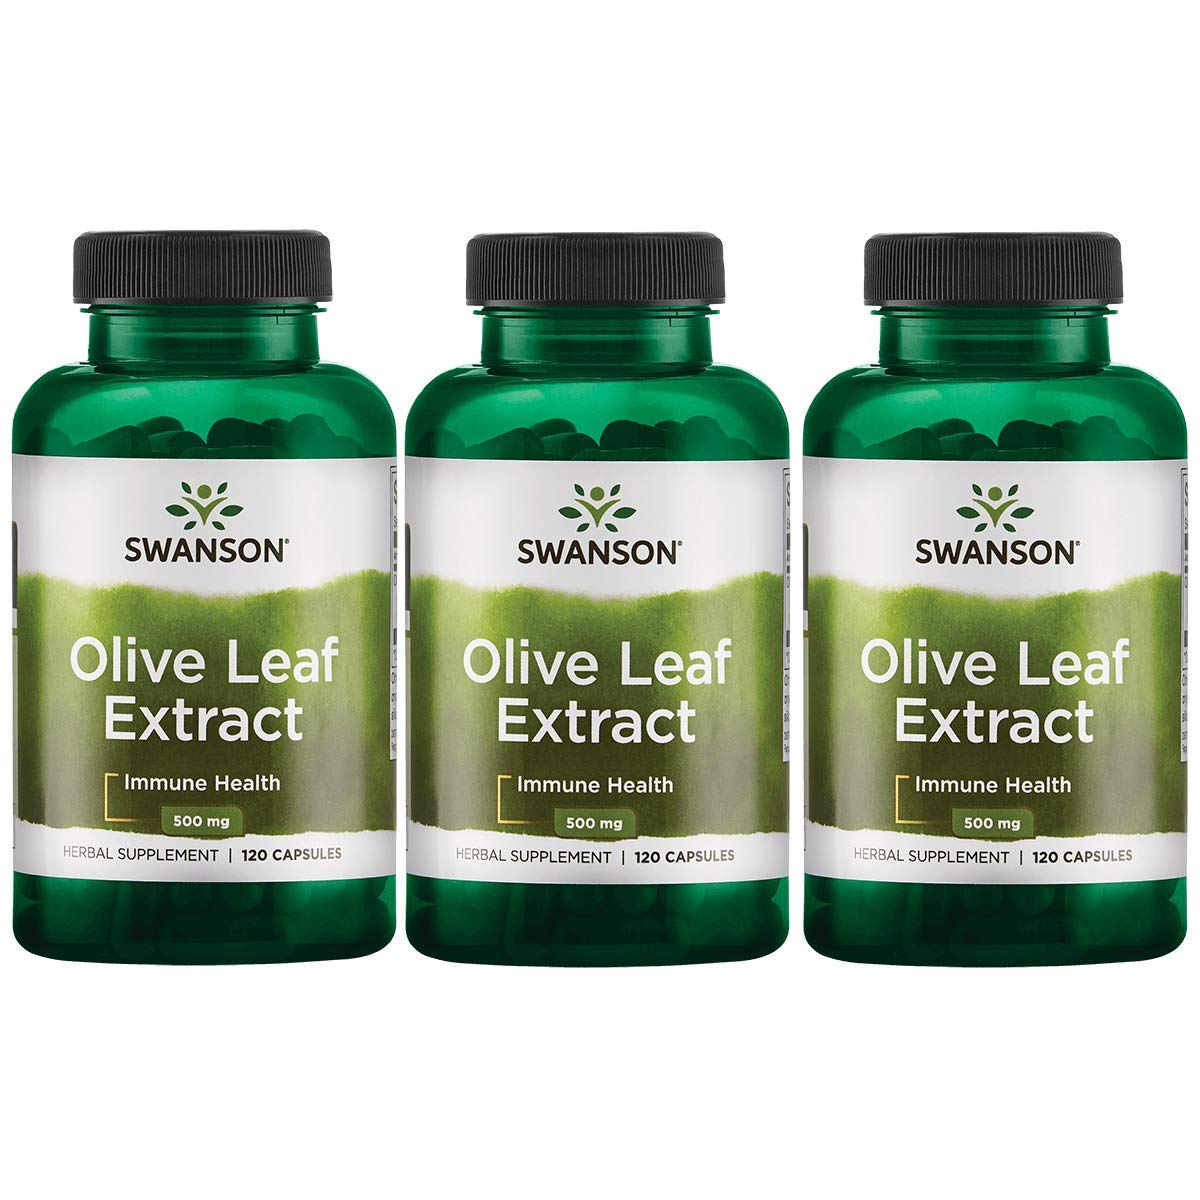 Swanson Olive Leaf Extract 500 mg 120 Caps 3 Pack